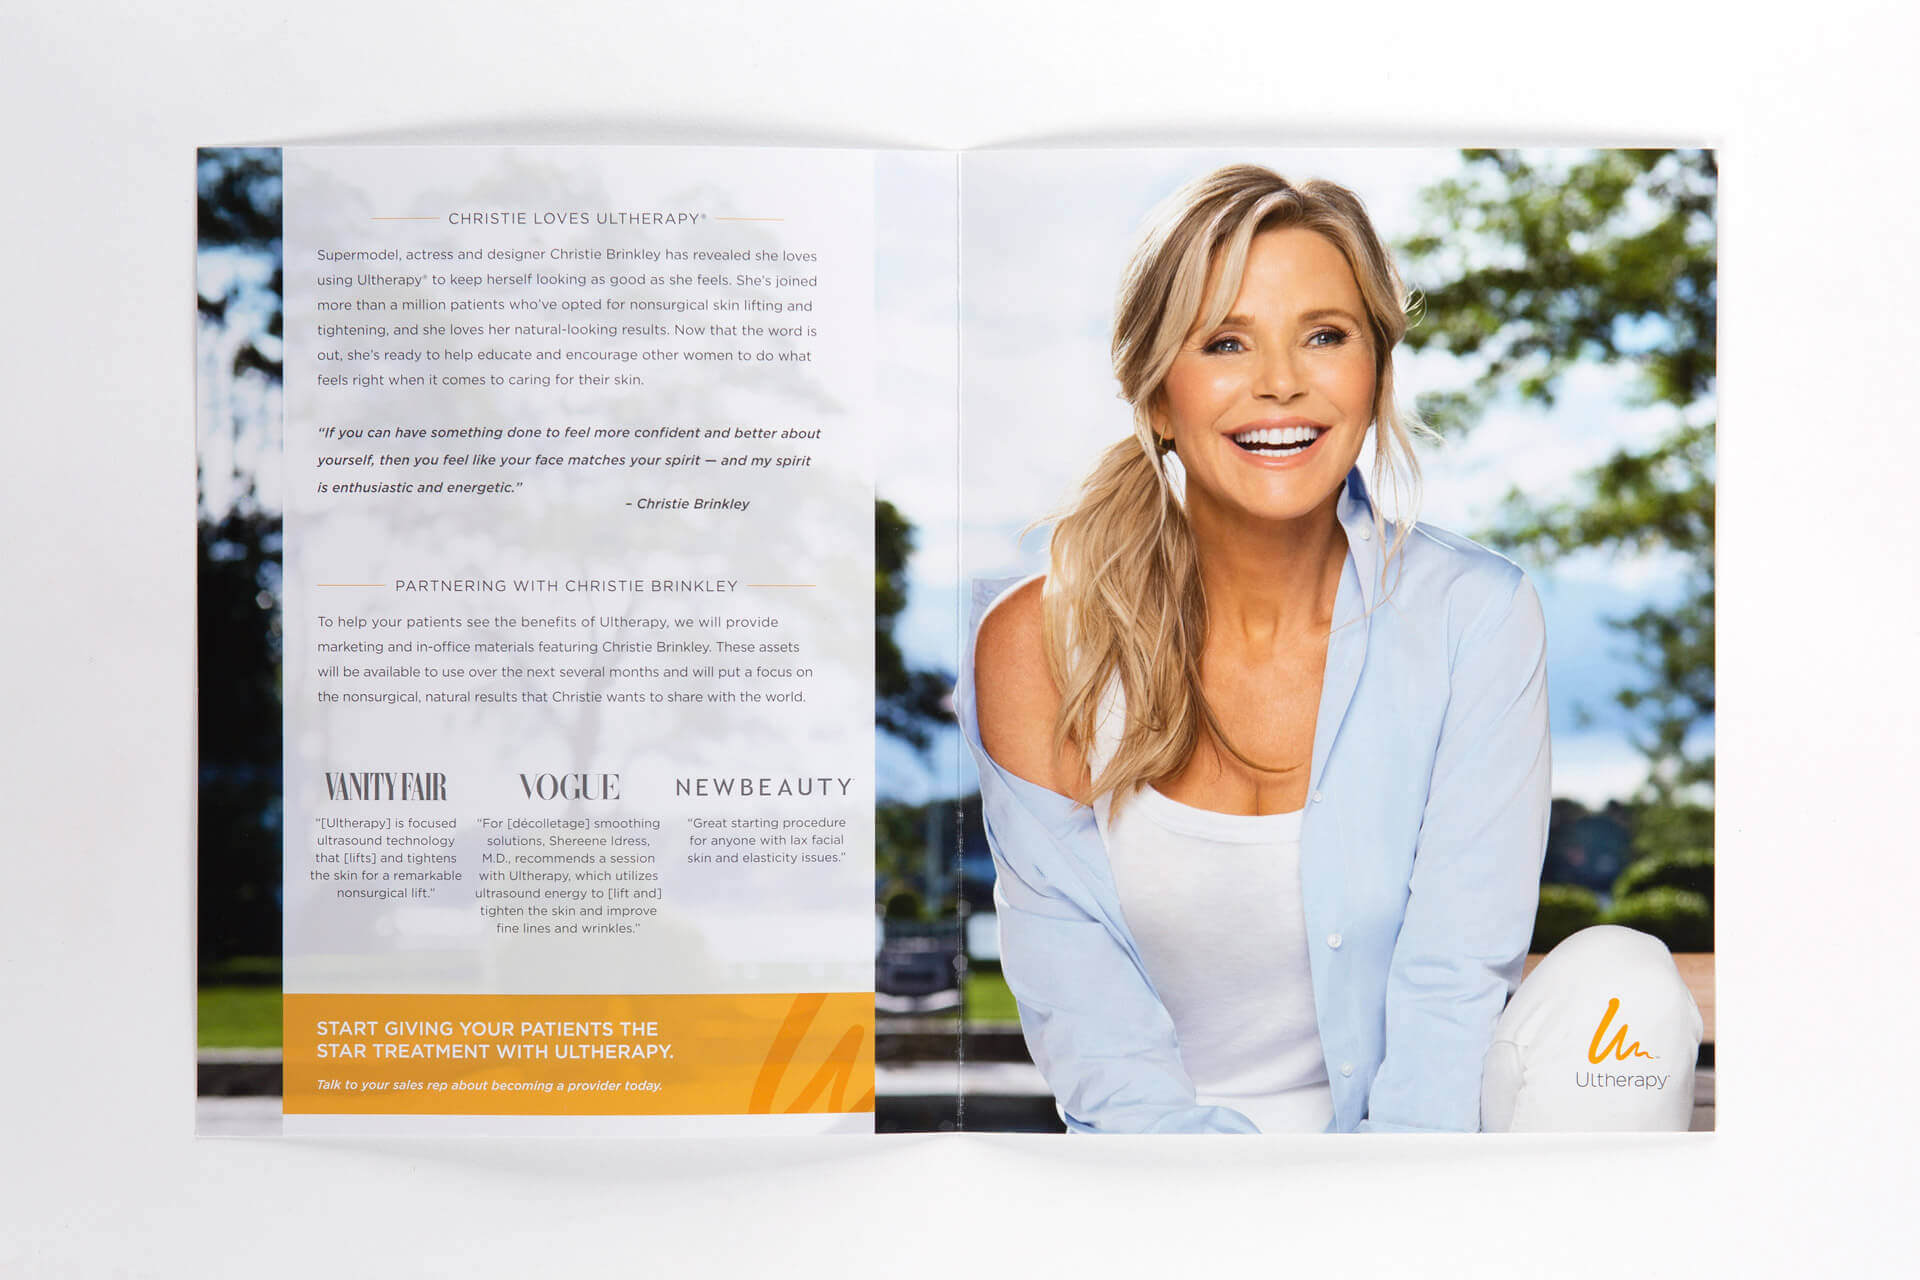 Ultherapy-ChristieBrinkley--GCGMarketing-Collateral-Brochure-2